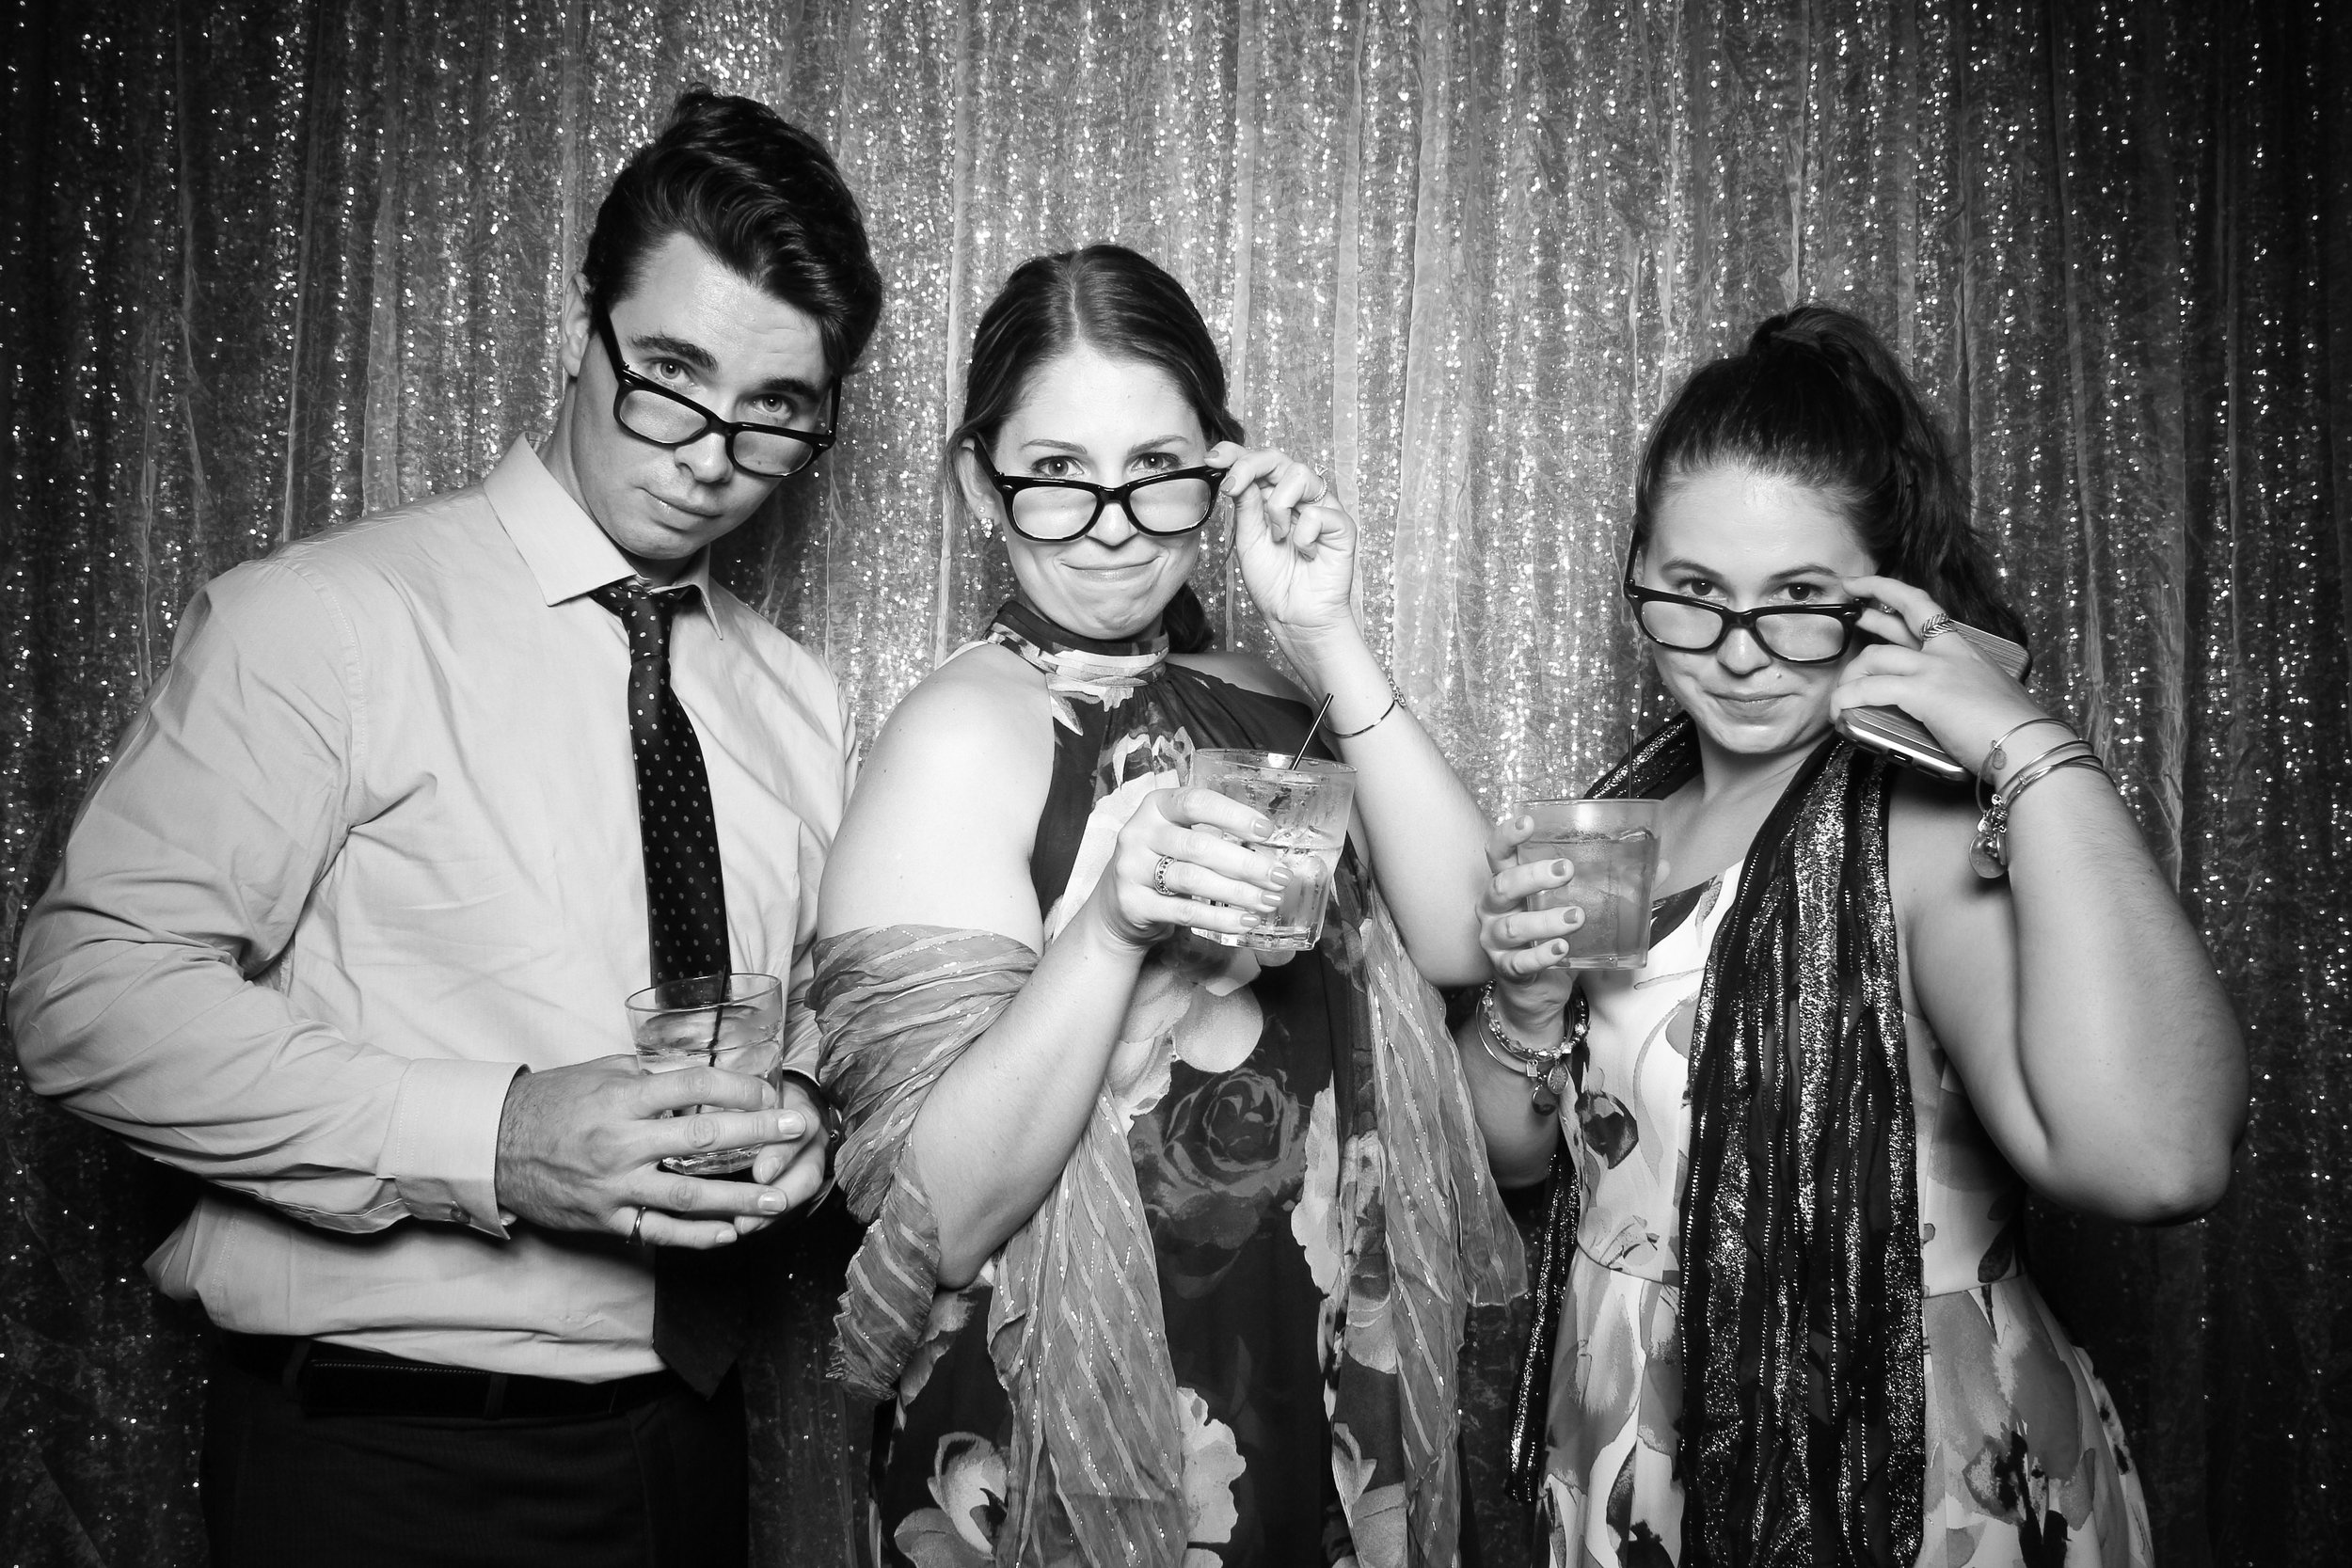 Chicago_Vintage_Wedding_Photobooth_Medinah_Country_Club_09.jpg